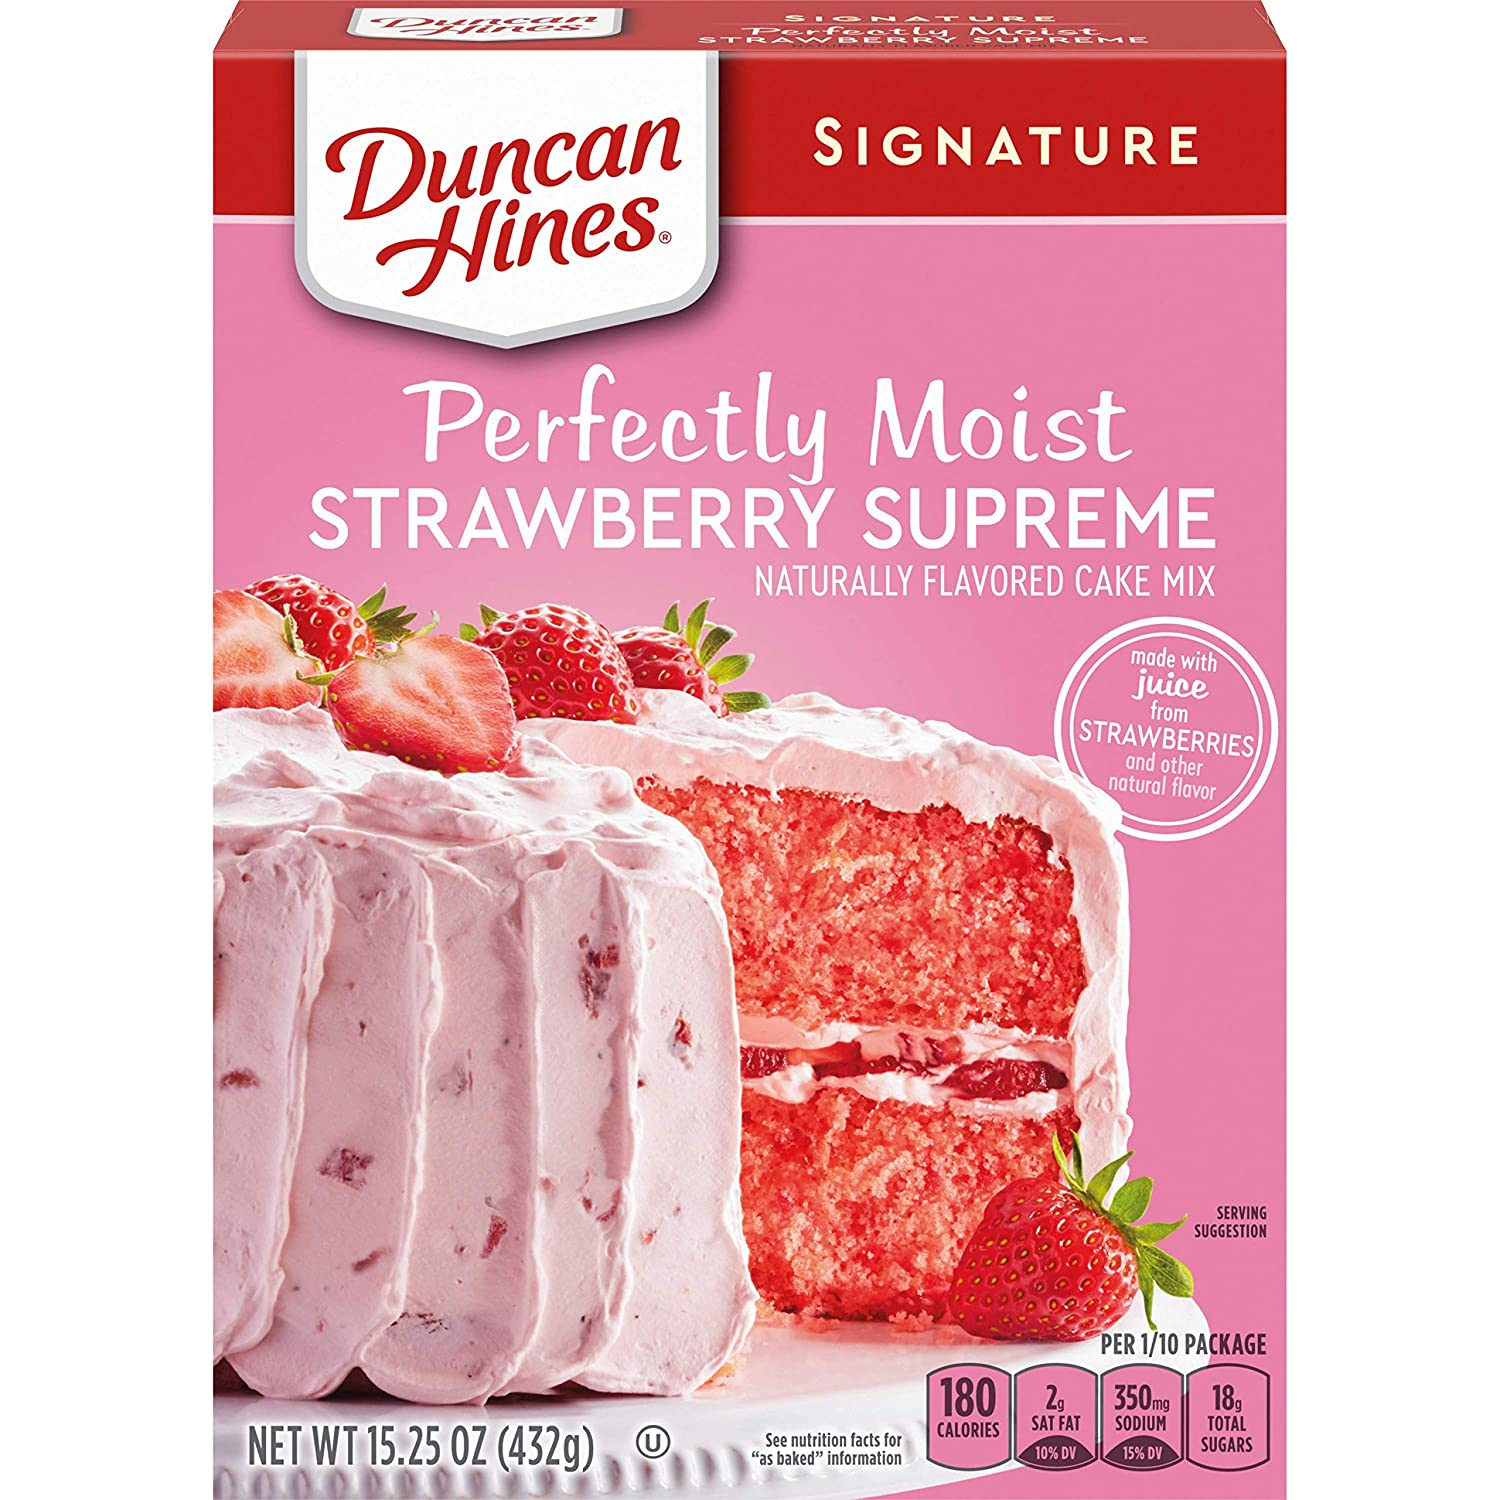 Duncan Hines Signature Perfectly Moist Strawberry Supreme Naturally Flavored Cake Mix